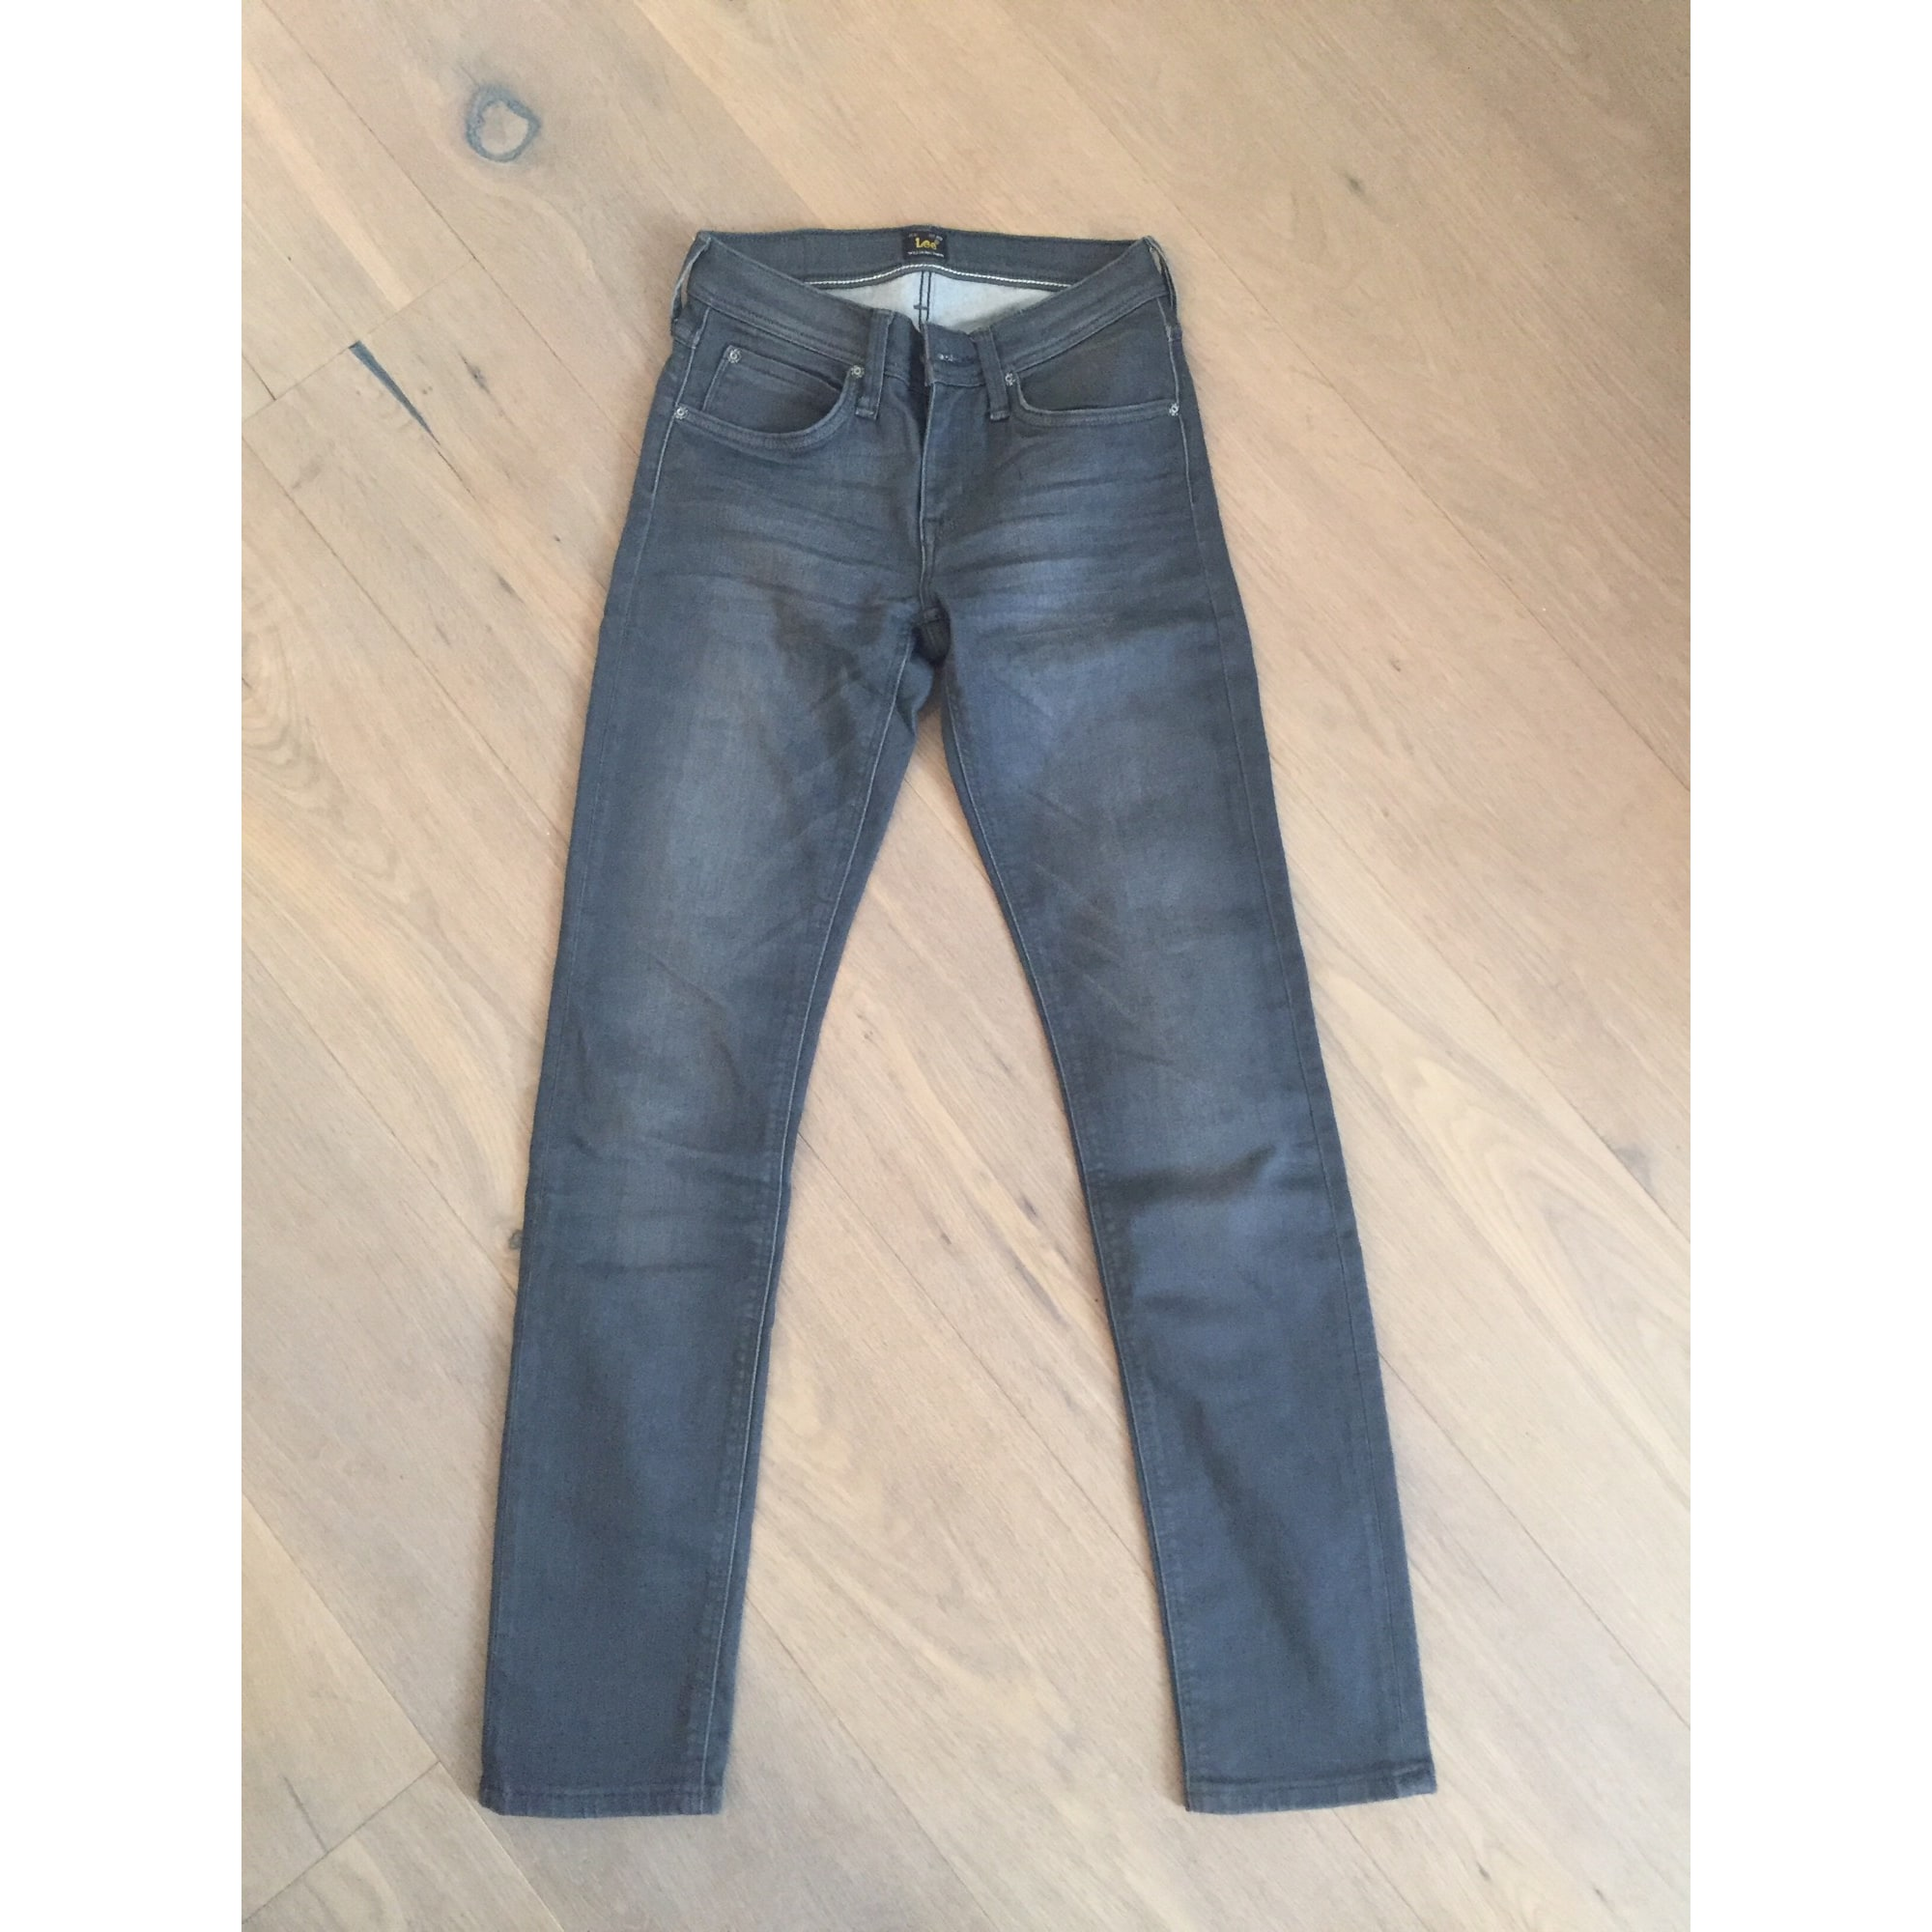 Jeans slim LEE Gris, anthracite